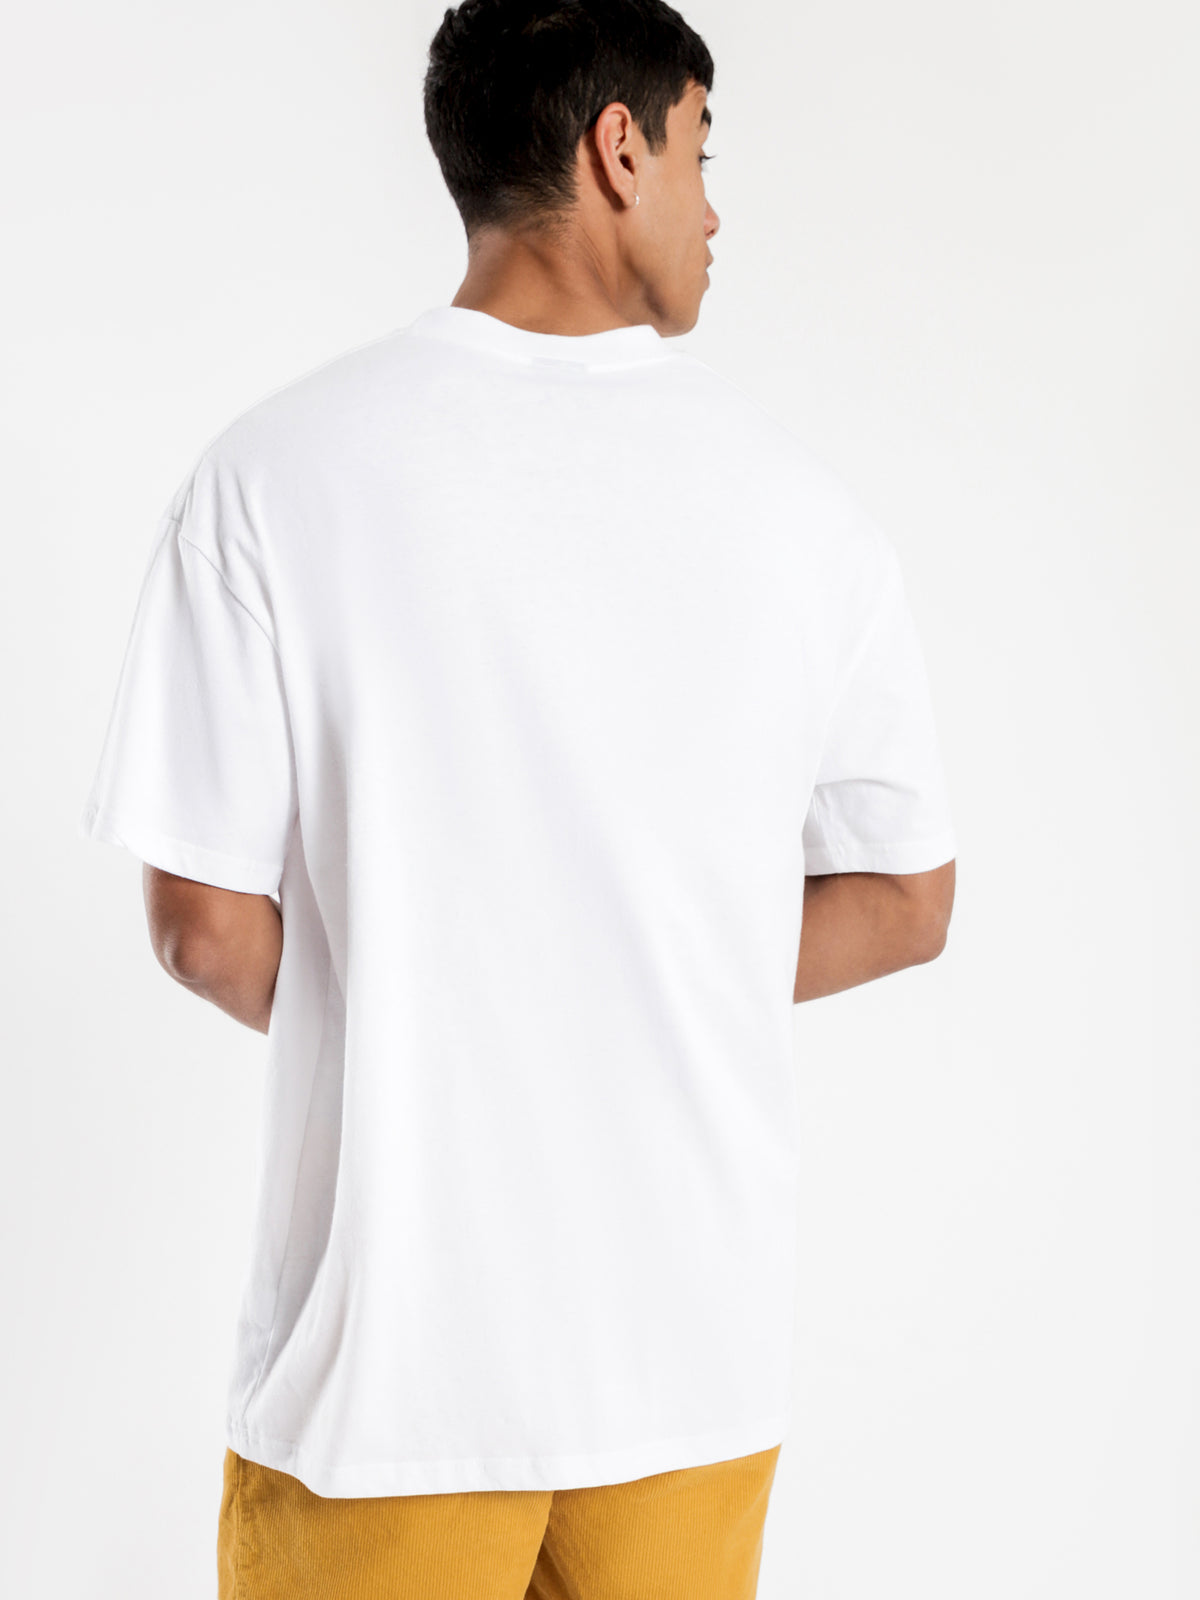 Graffiti Link Pocket Short Sleeve T-Shirt in White